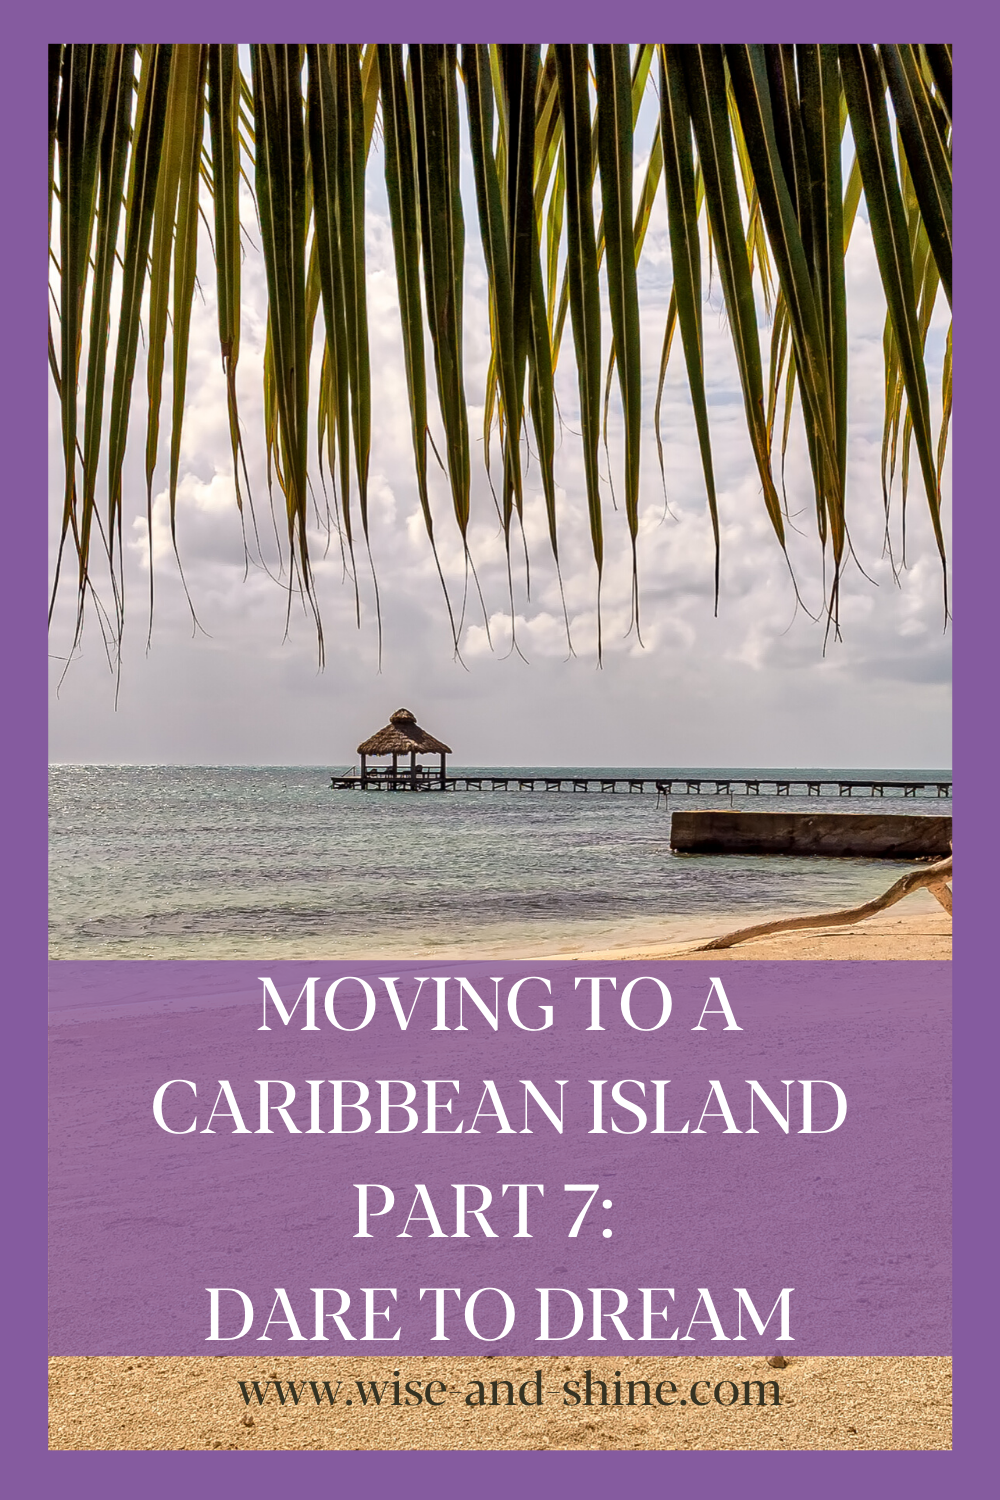 Moving To A Caribbean Island Part 7 Dare To Dream In 2020 Caribbean Islands Dares Caribbean